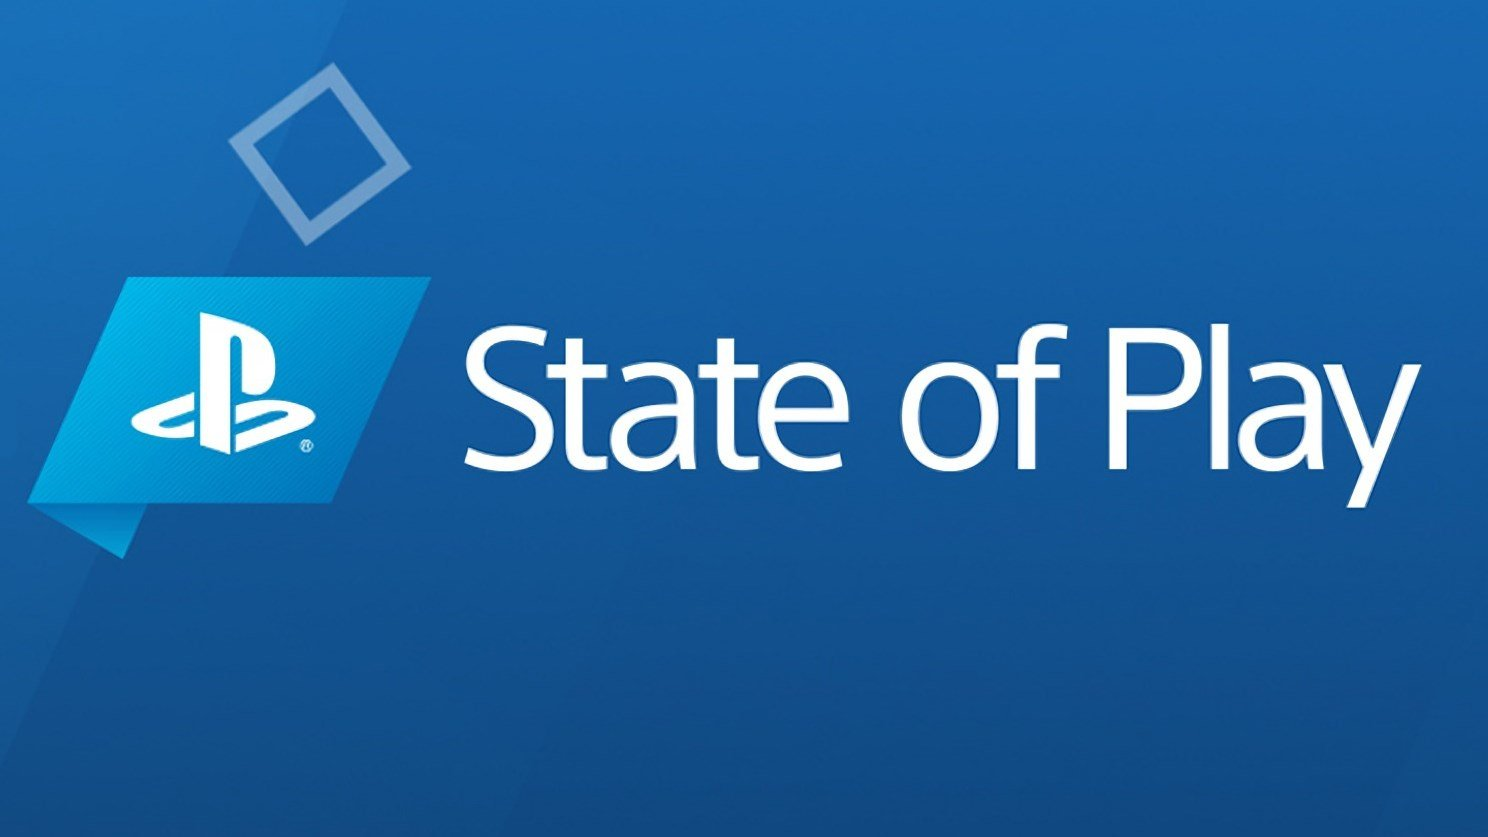 PlayStation State of Play: Where to Watch